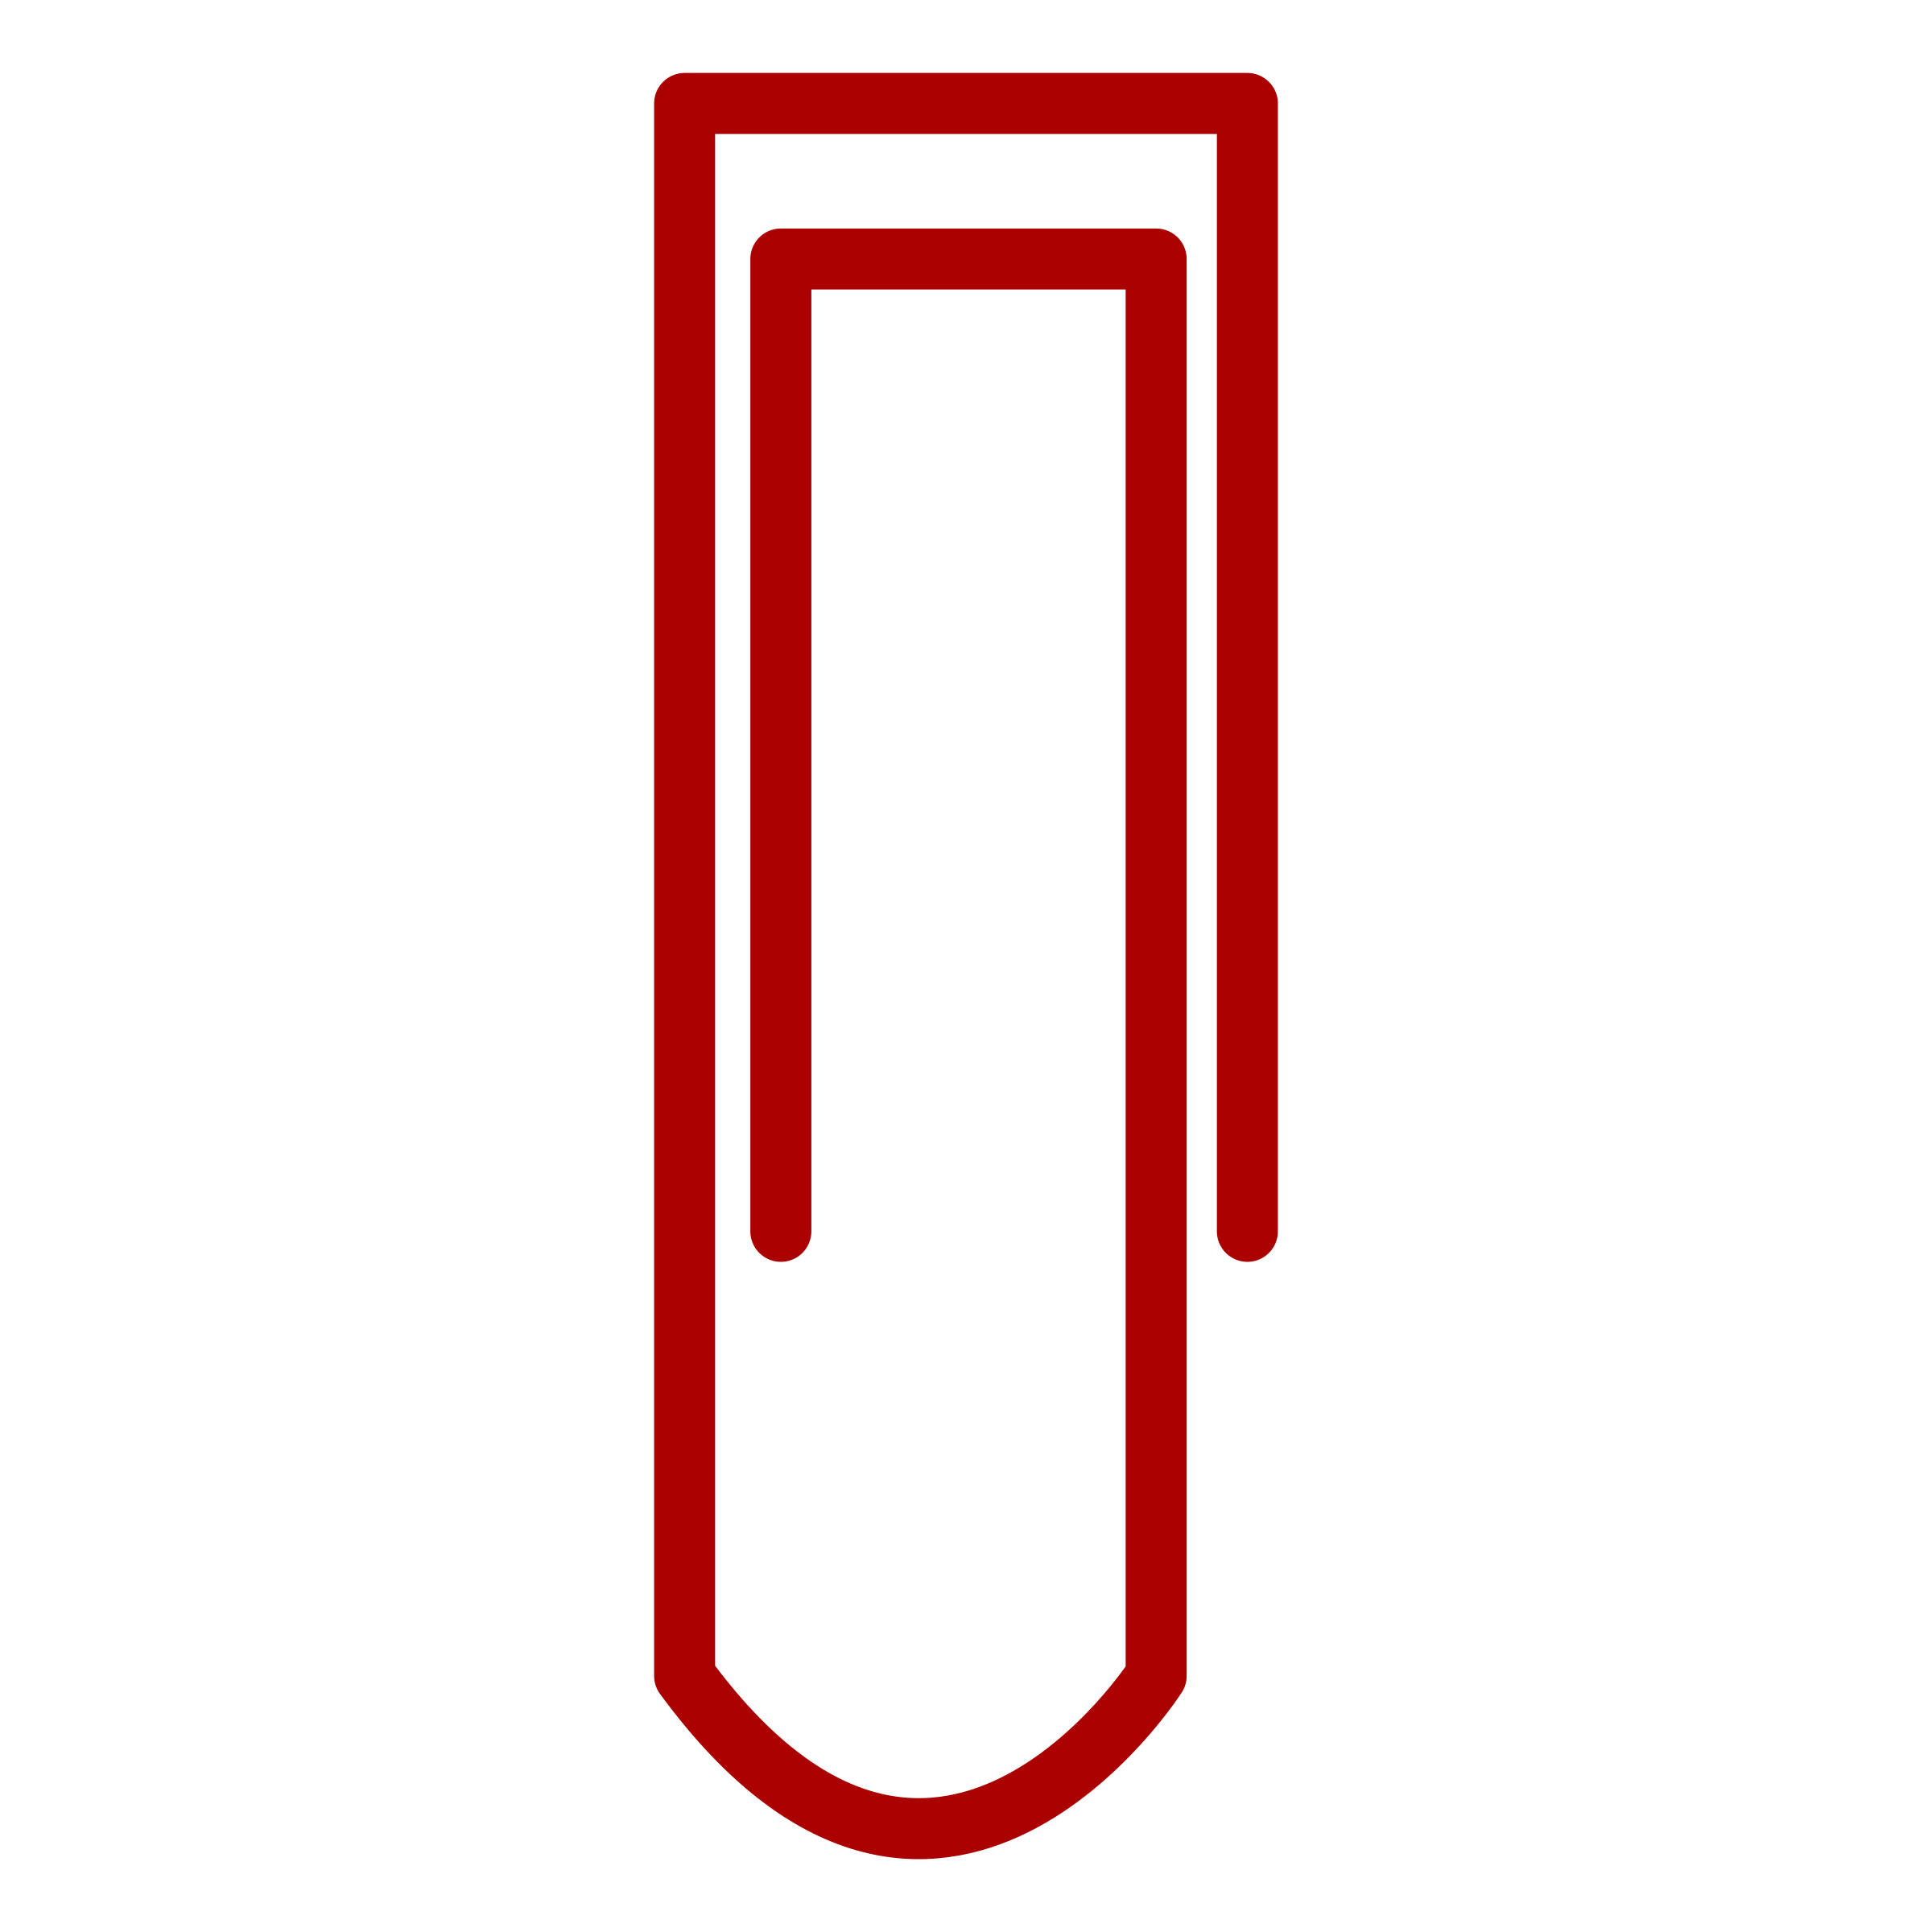 Red paper clip clipart image black and white stock Red Paperclip vector Clipart image - Free stock photo ... image black and white stock